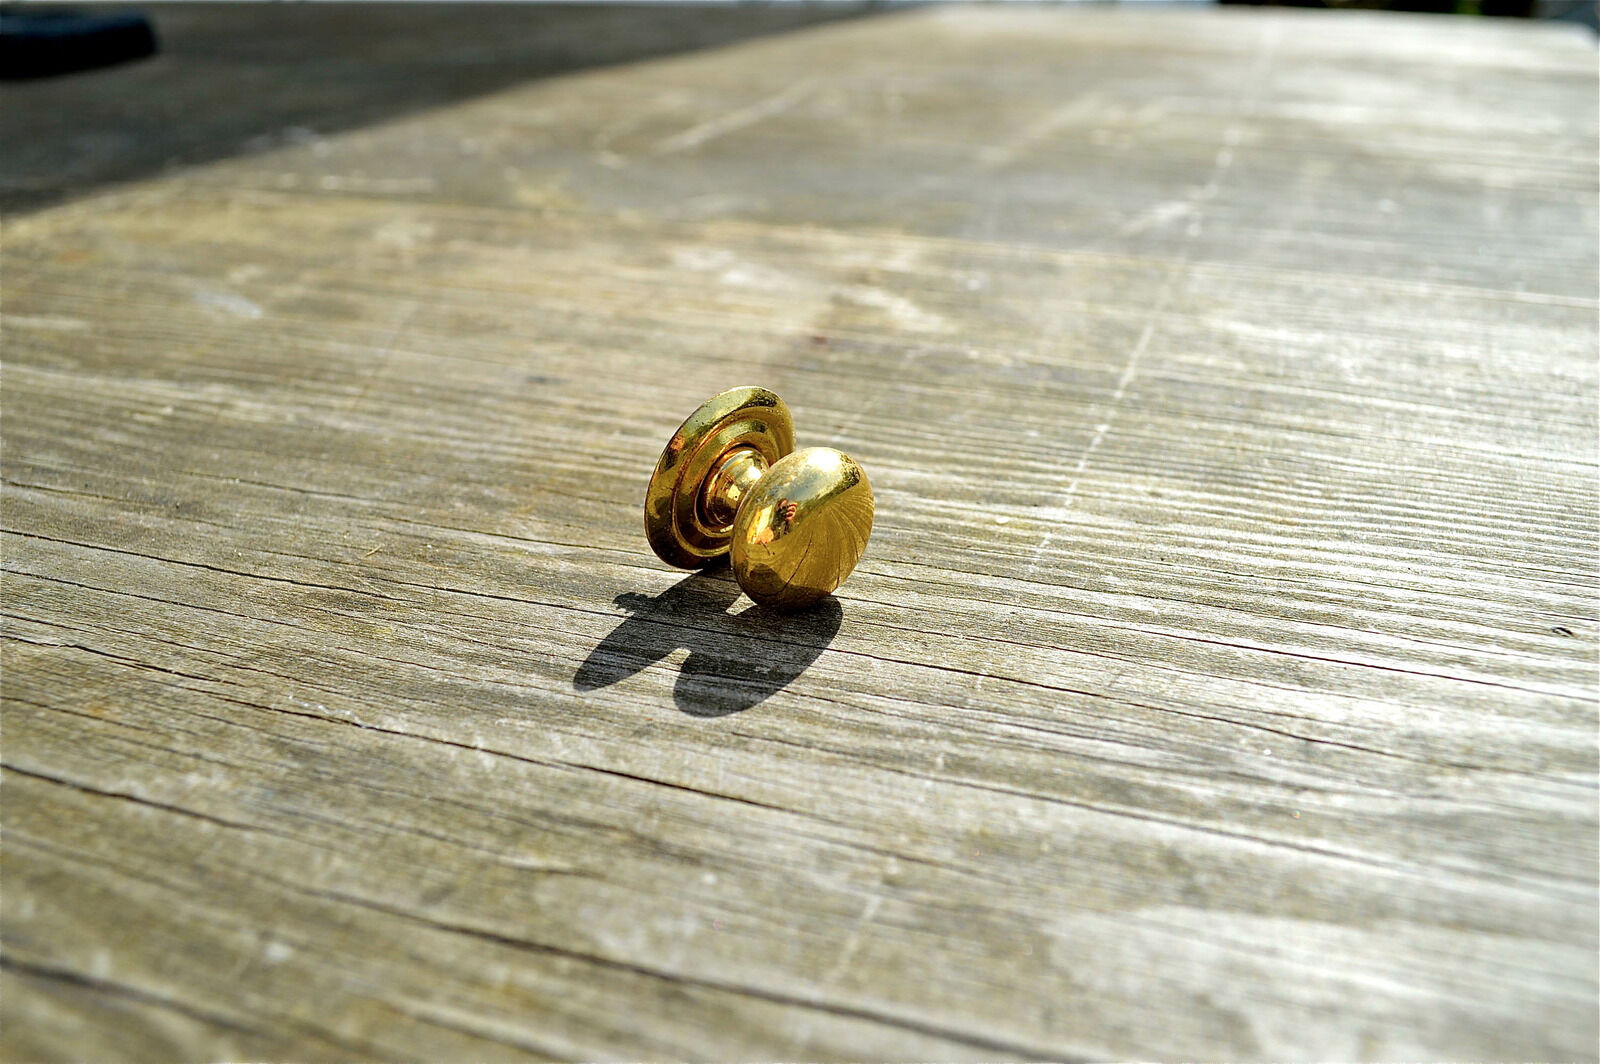 Good Quality Old Small Brass Screw In Furniture Handle Chest Knob Pull Ba4